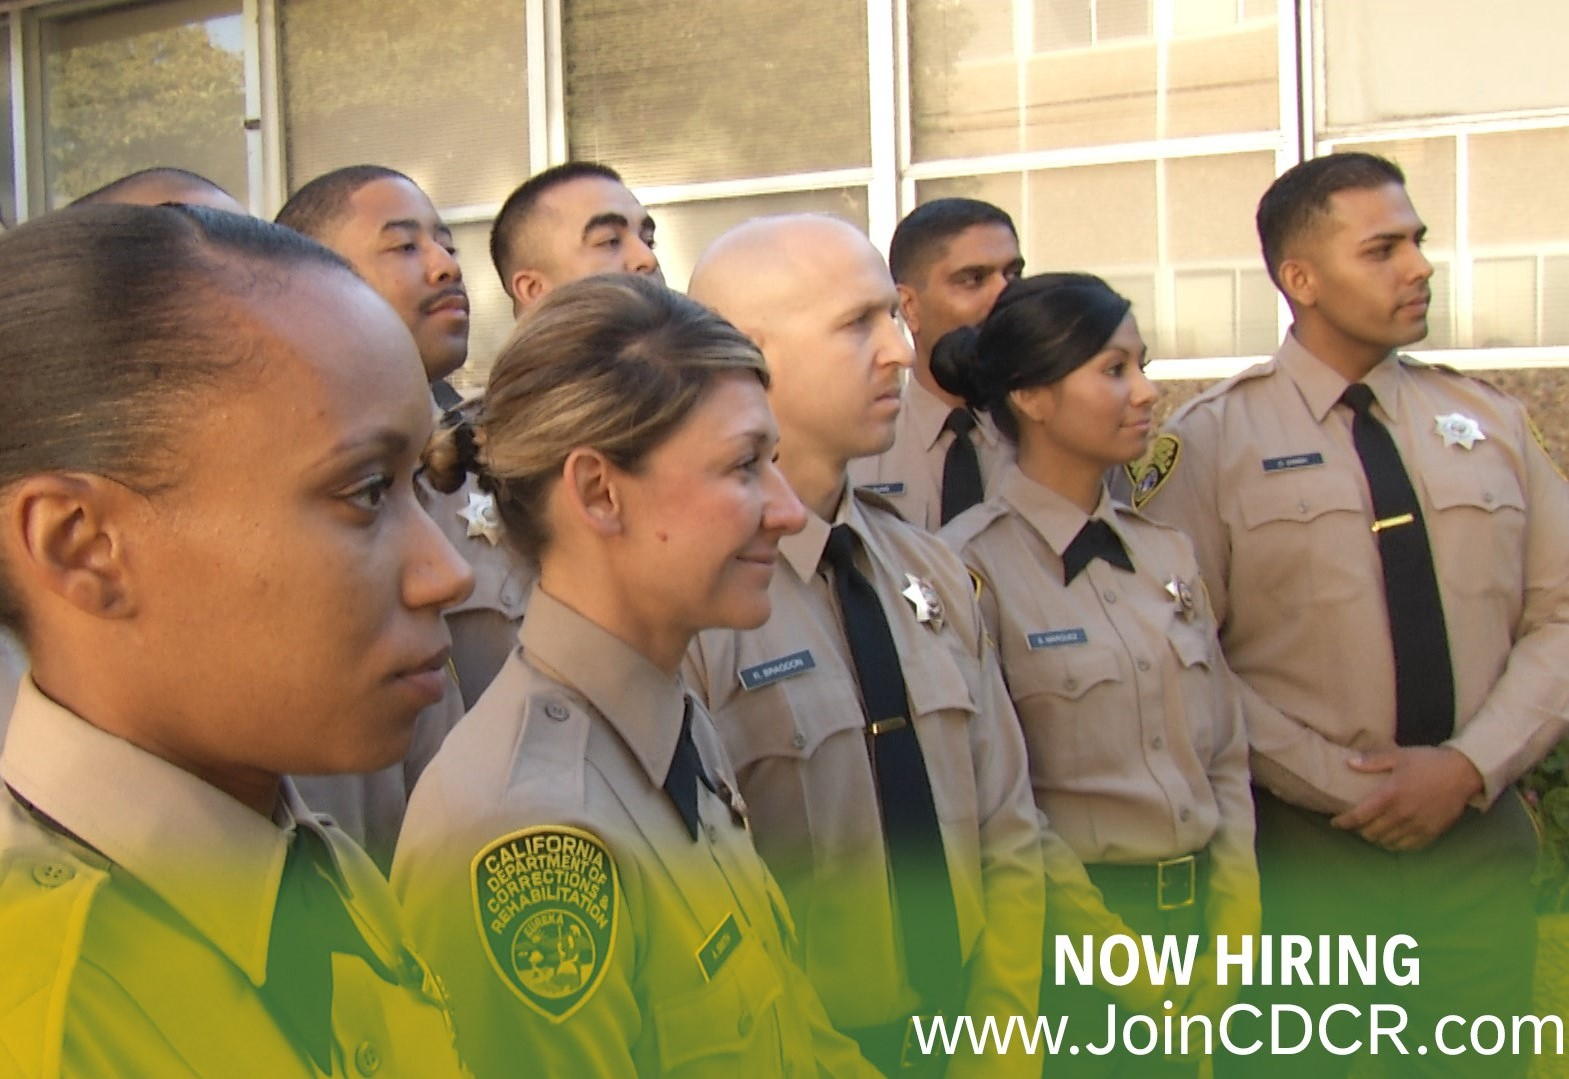 Two lines of men and women in Correctional Officer uniforms